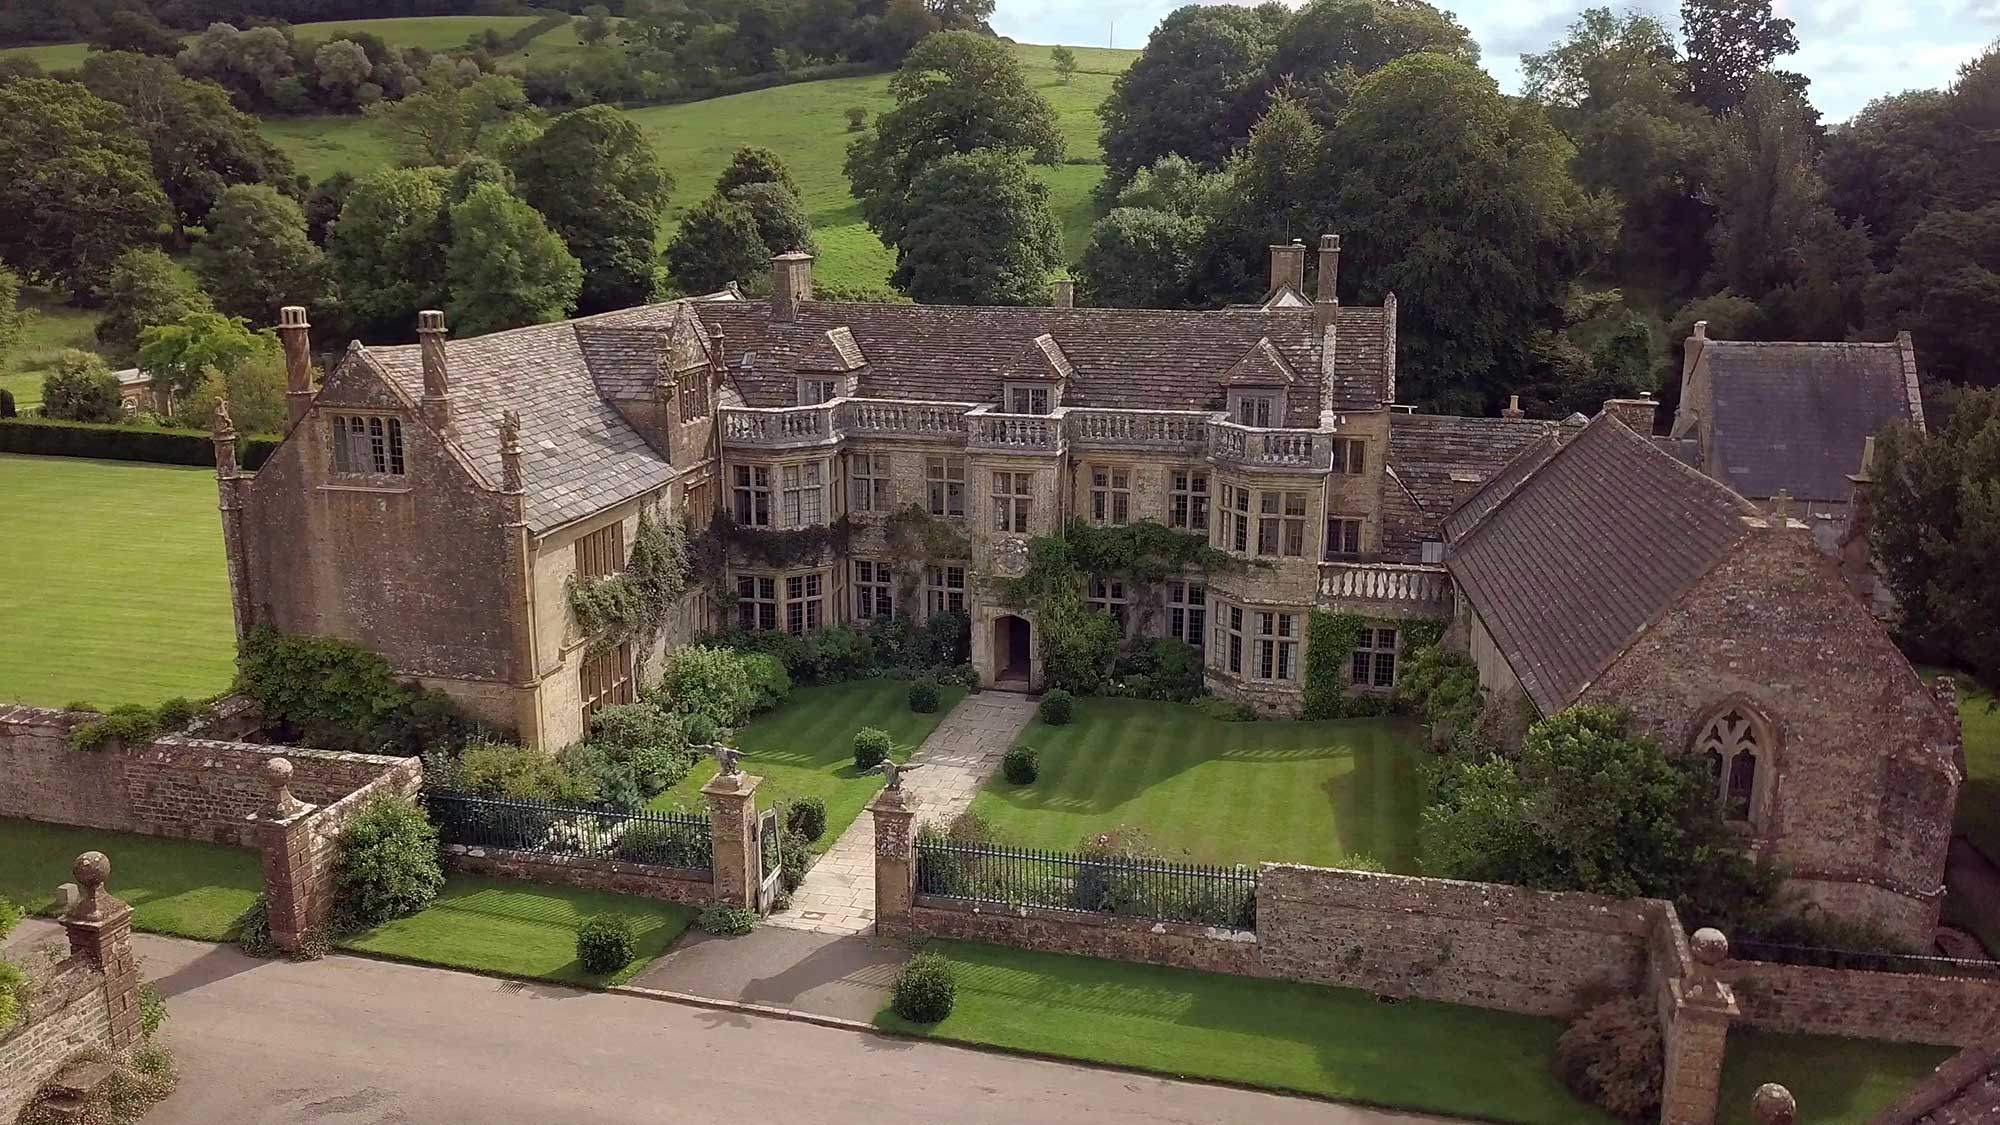 Mapperton House aerial view - wedding venue in Dorset - photograph by Linus Moran